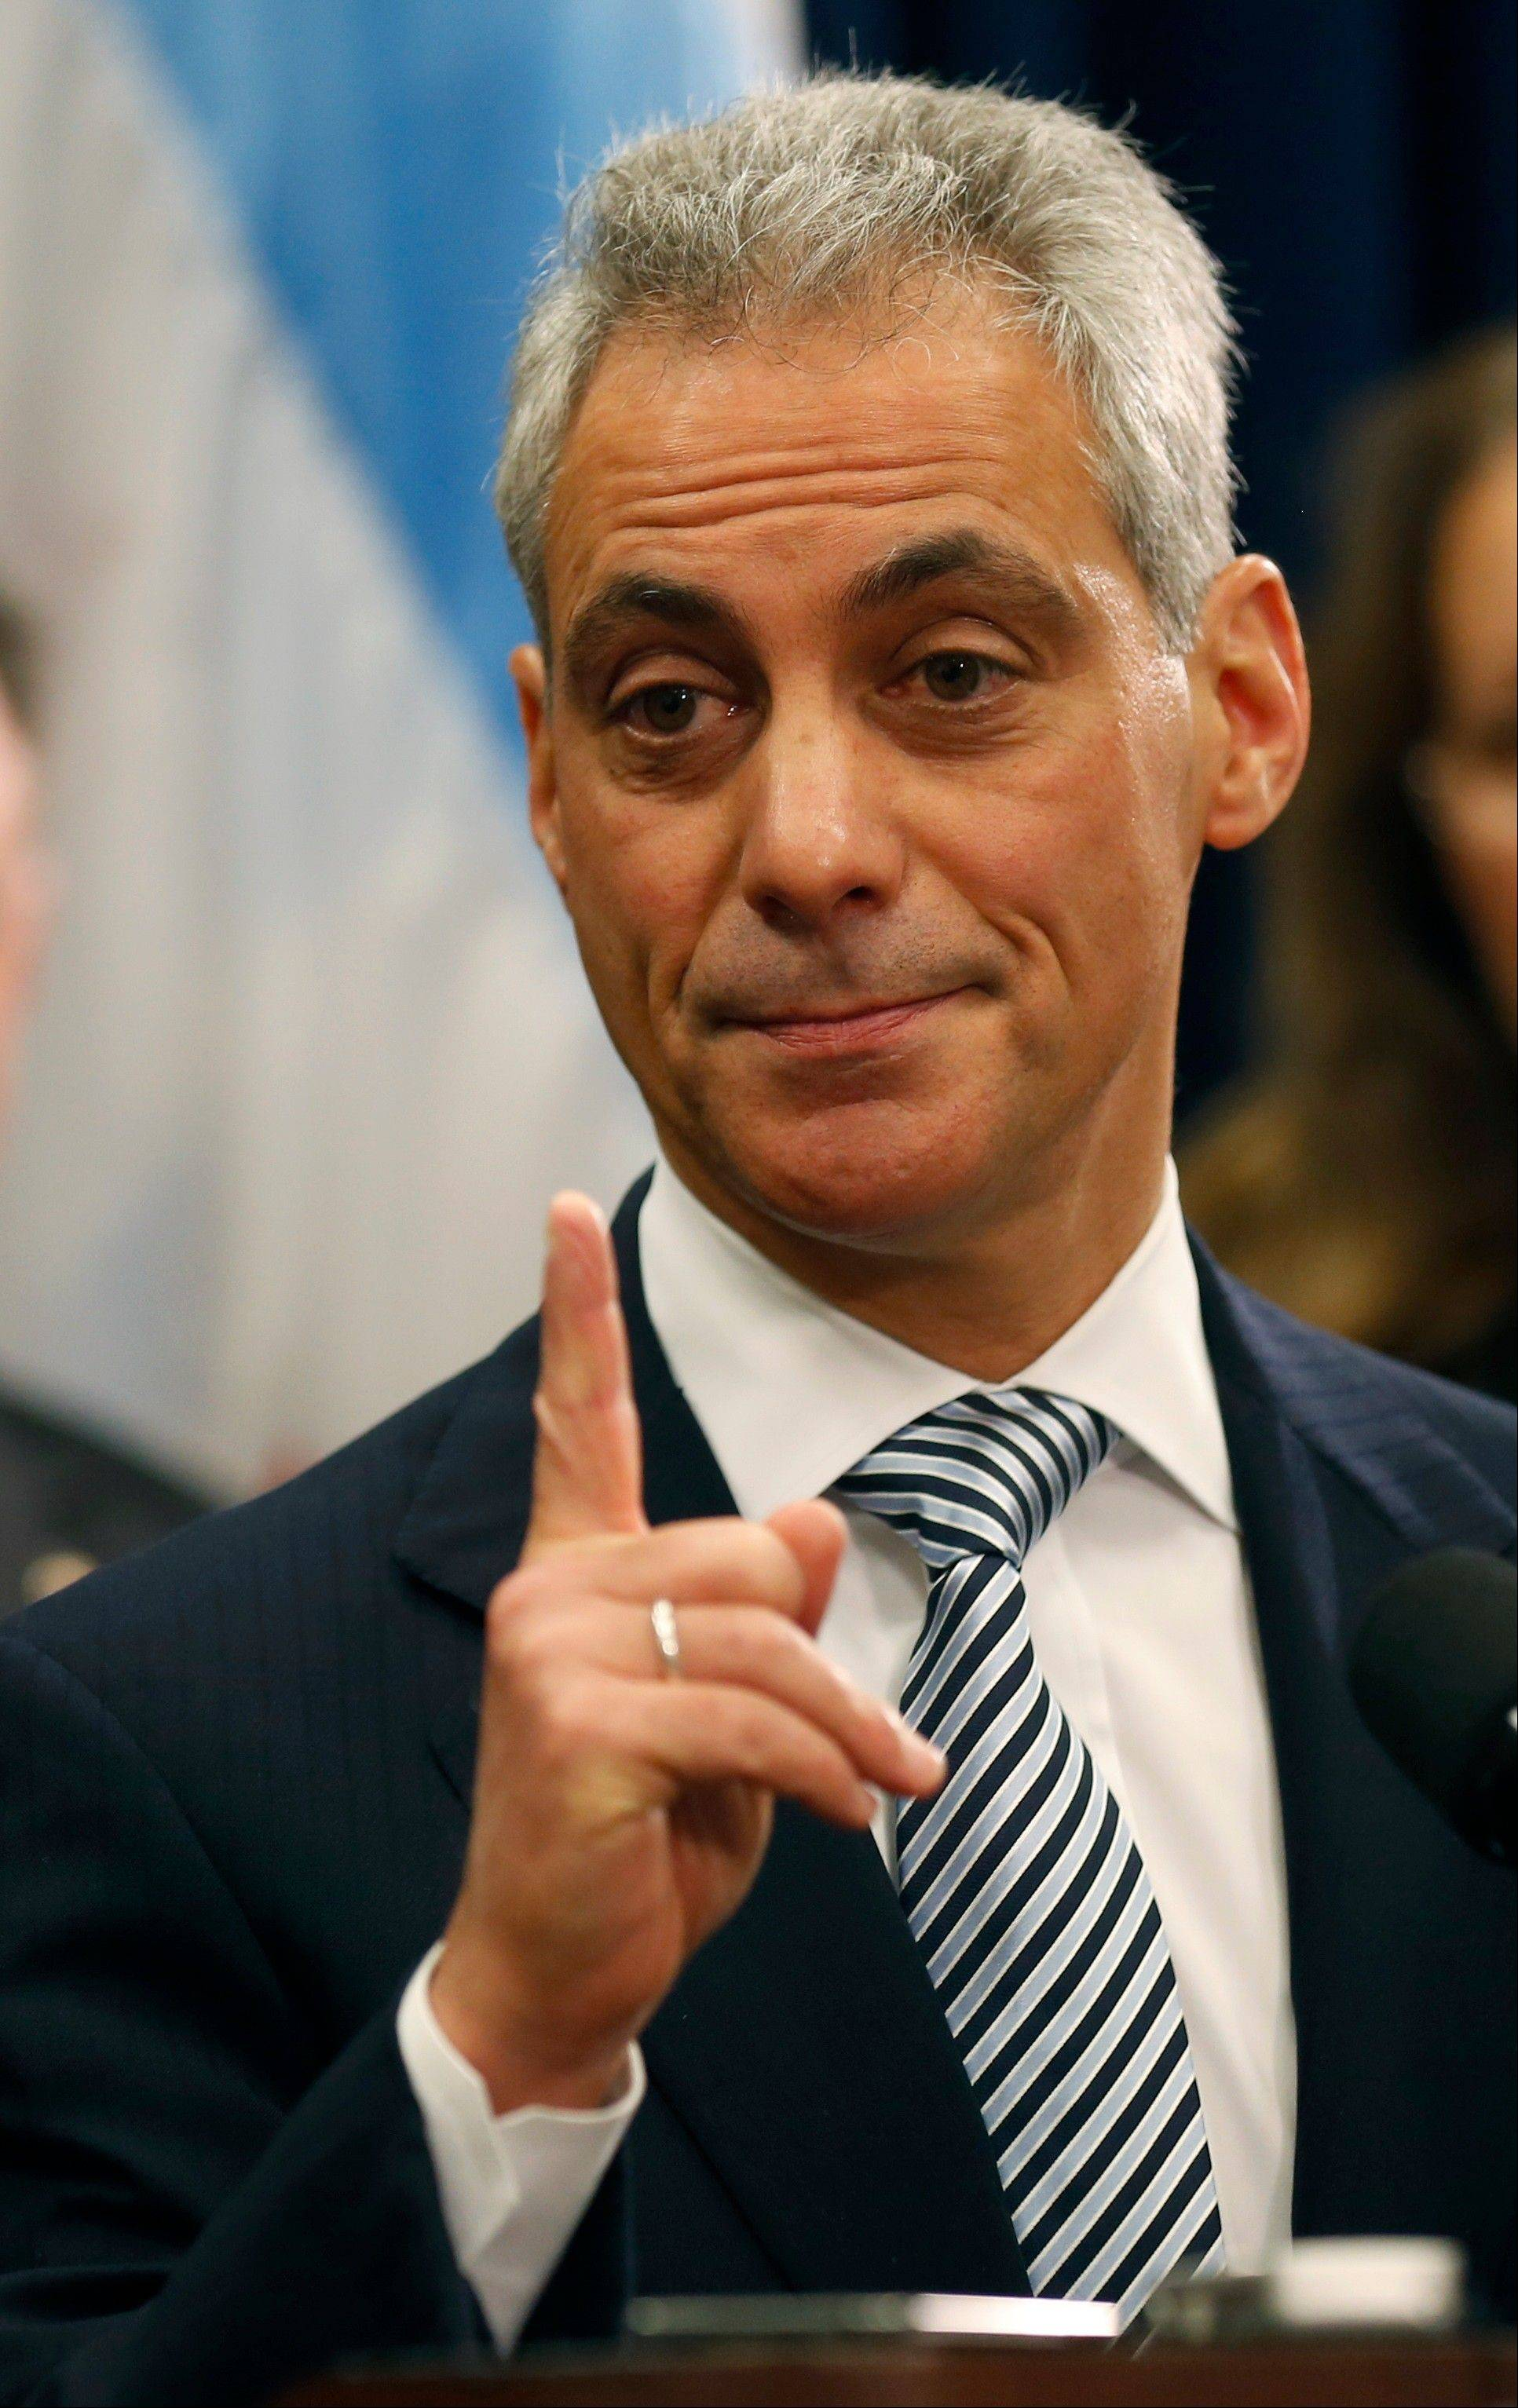 Emanuel says state will legalize gay marriage, ban assault weapons